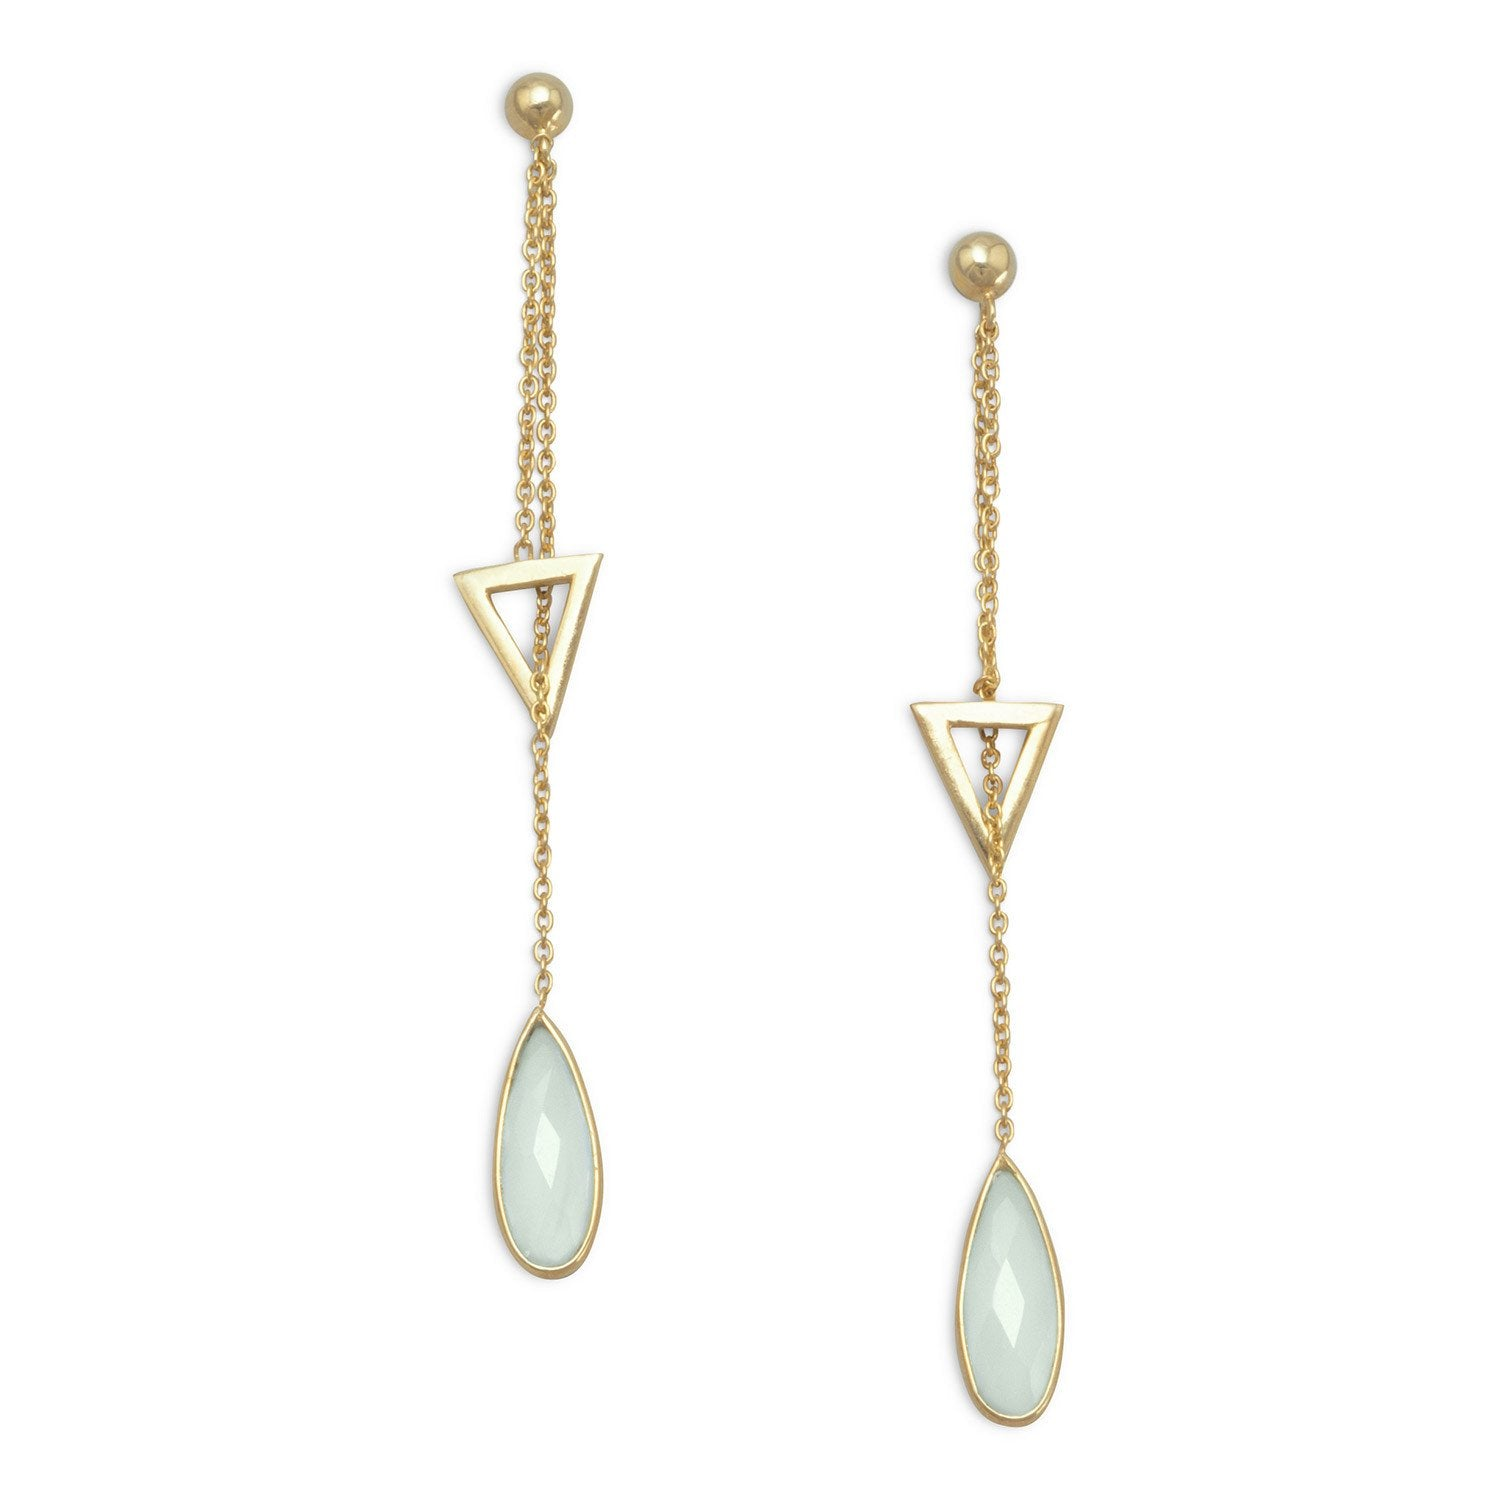 18K Gold Chalcedony Chain Drop Earrings